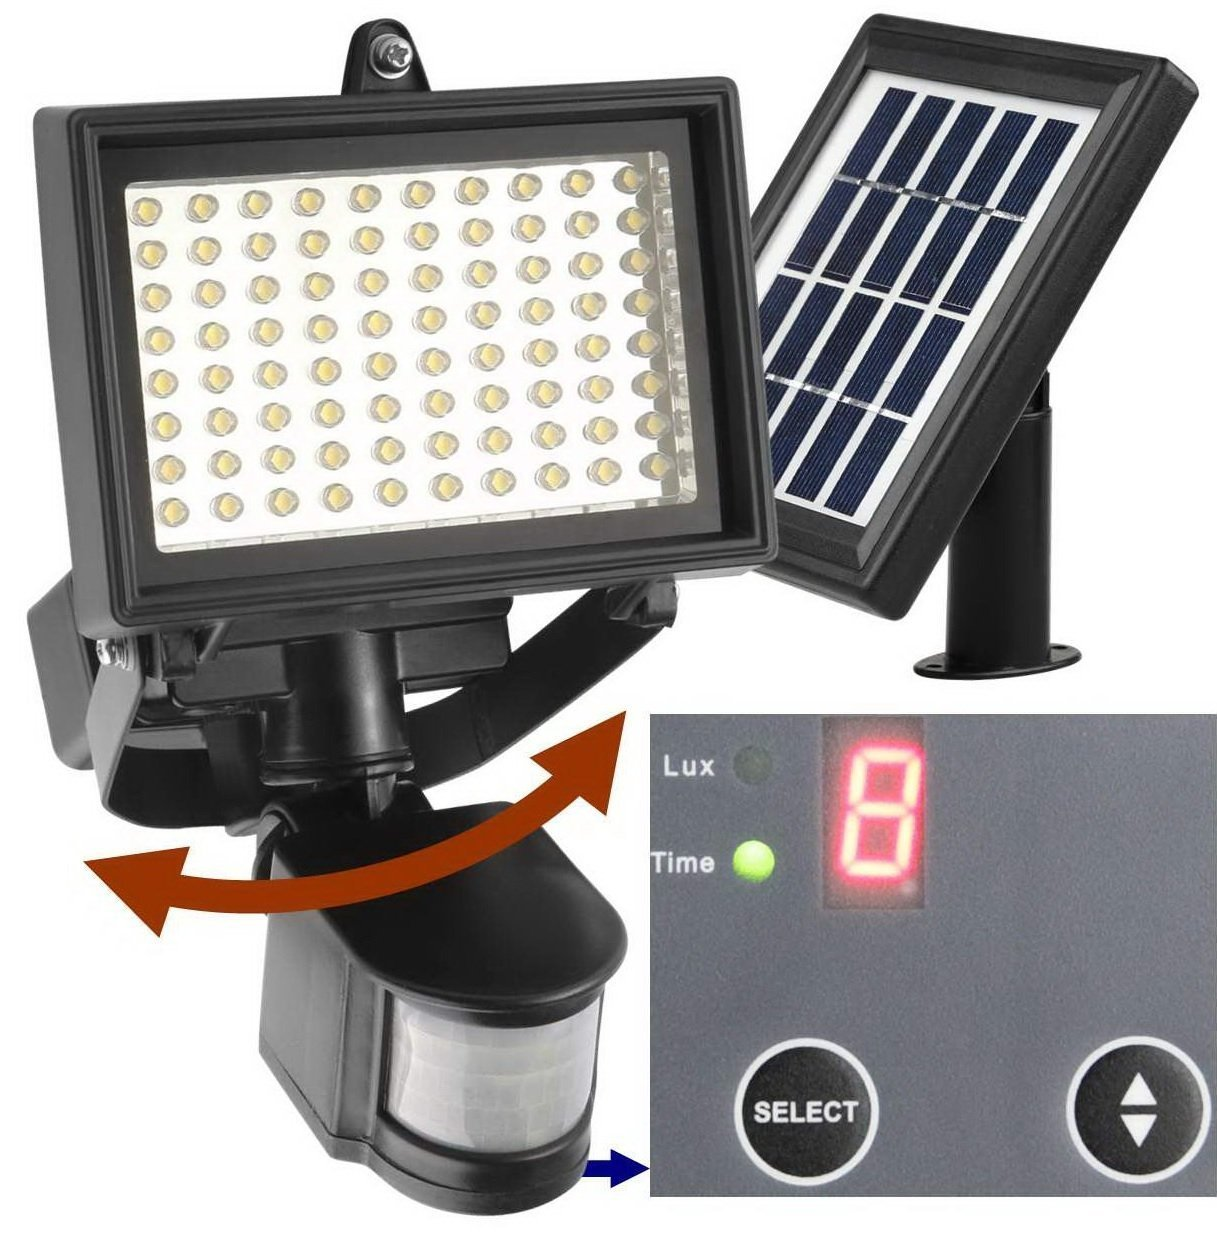 Amazon.com Robust Solar 80 LED Outdoor Solar Motion Light Digitally Adjustable Time u0026 LUX 2-axis Adjustable Motion Sensor with Lithium Battery Home u0026 ...  sc 1 st  Amazon.com & Amazon.com: Robust Solar 80 LED Outdoor Solar Motion Light ... azcodes.com